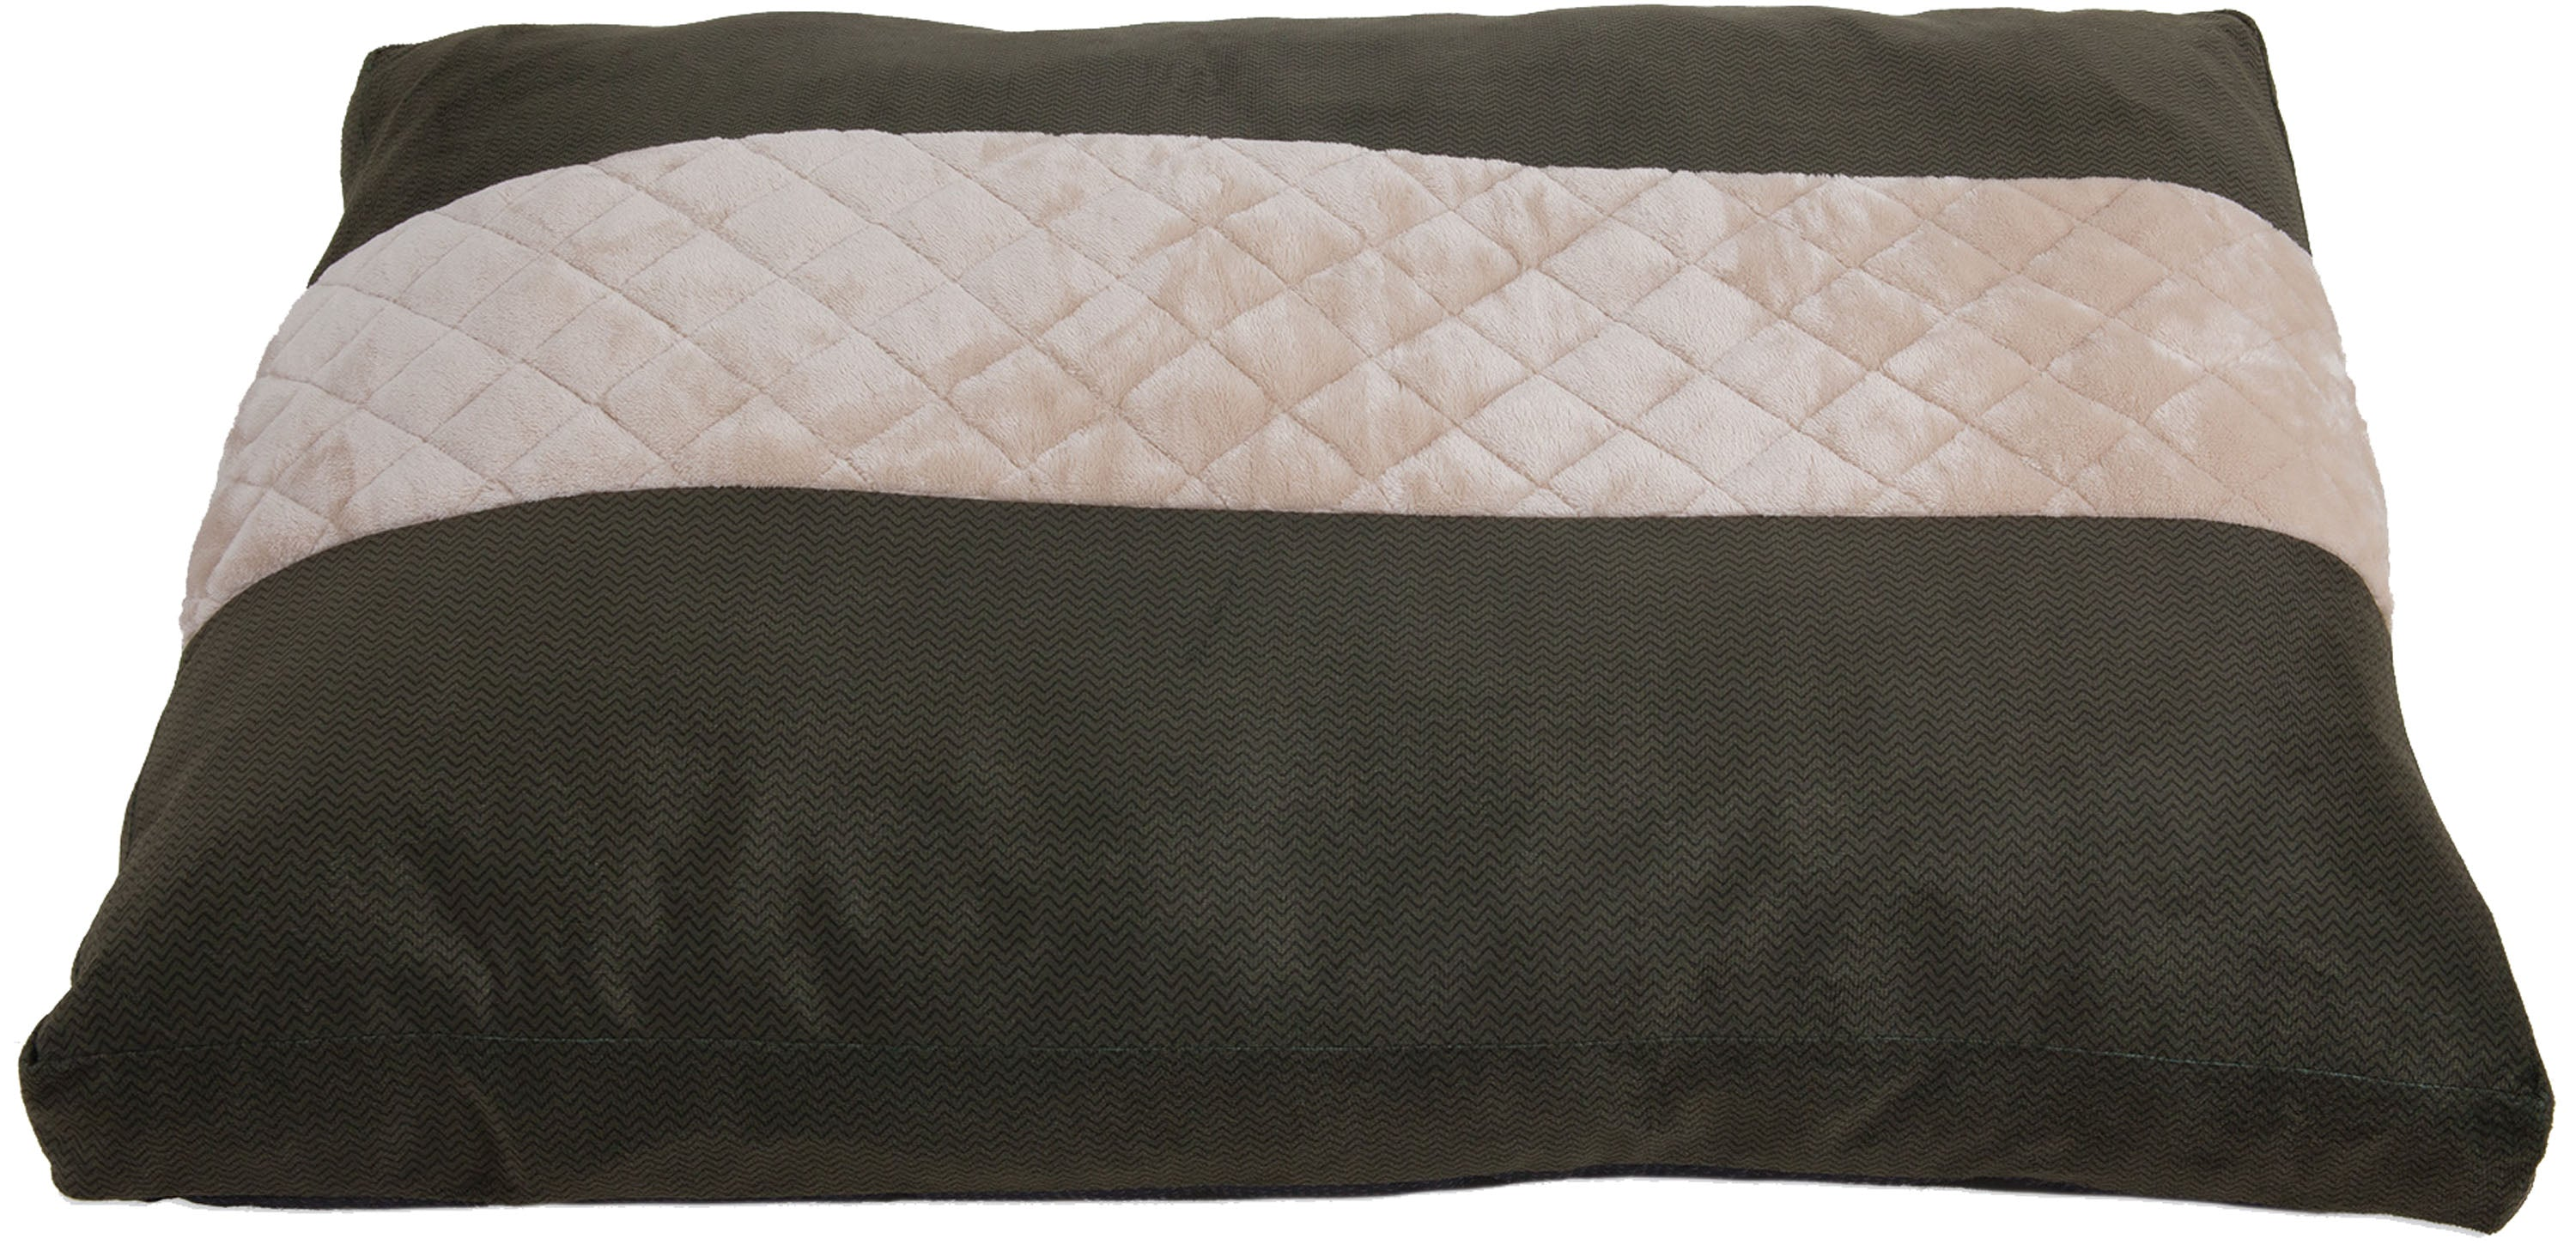 ASPEN PET QUILTED GUSSETED PILLOW BED